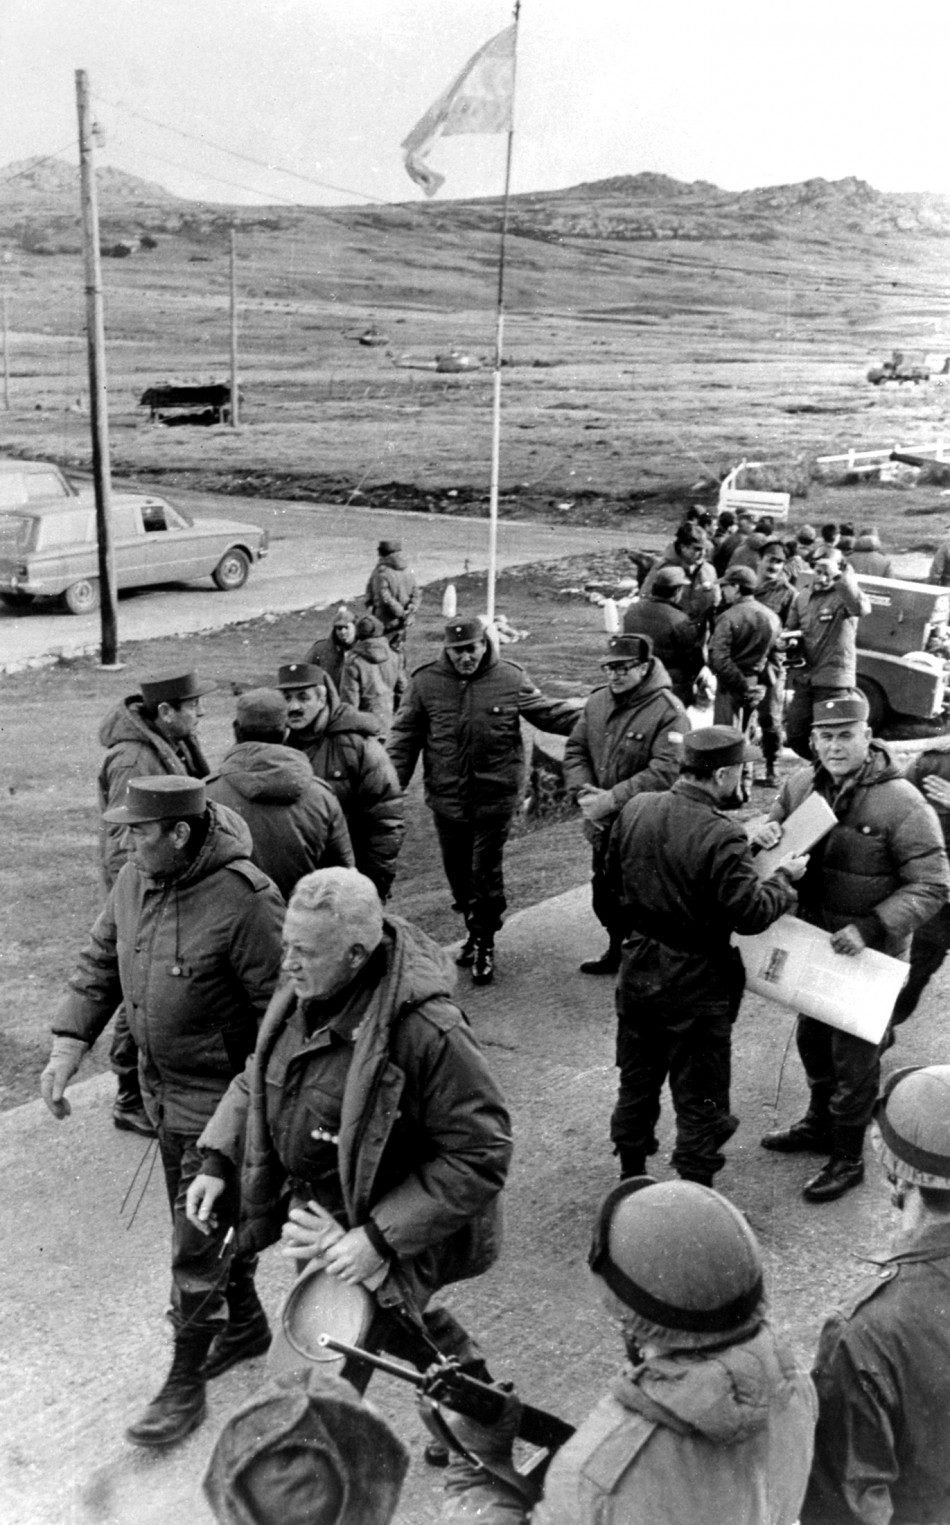 Historic Images of the Falklands War Depicting 30-Years of Long-Standing Dispute